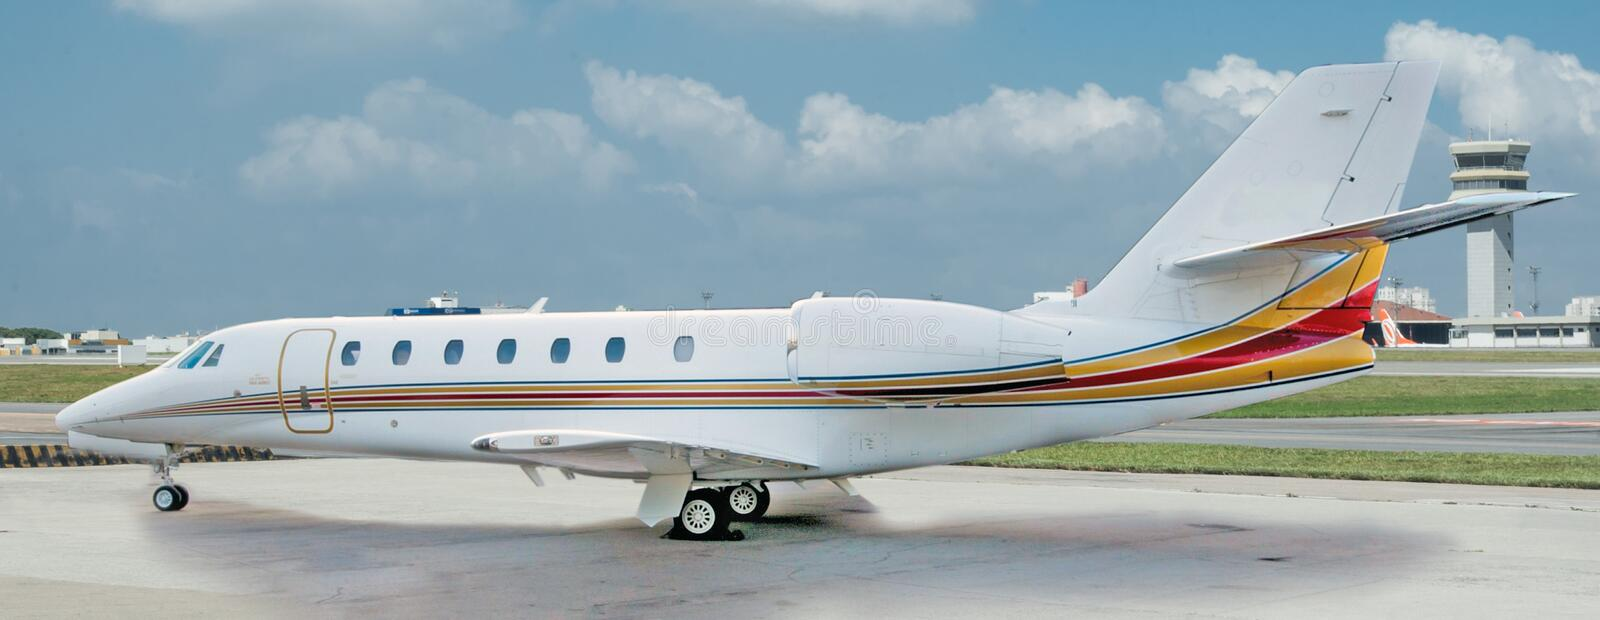 Aviation and executive airplanes high performance turbine jets. Aviation executive jets transportation around the world civil transportation, inside de jets stock photography